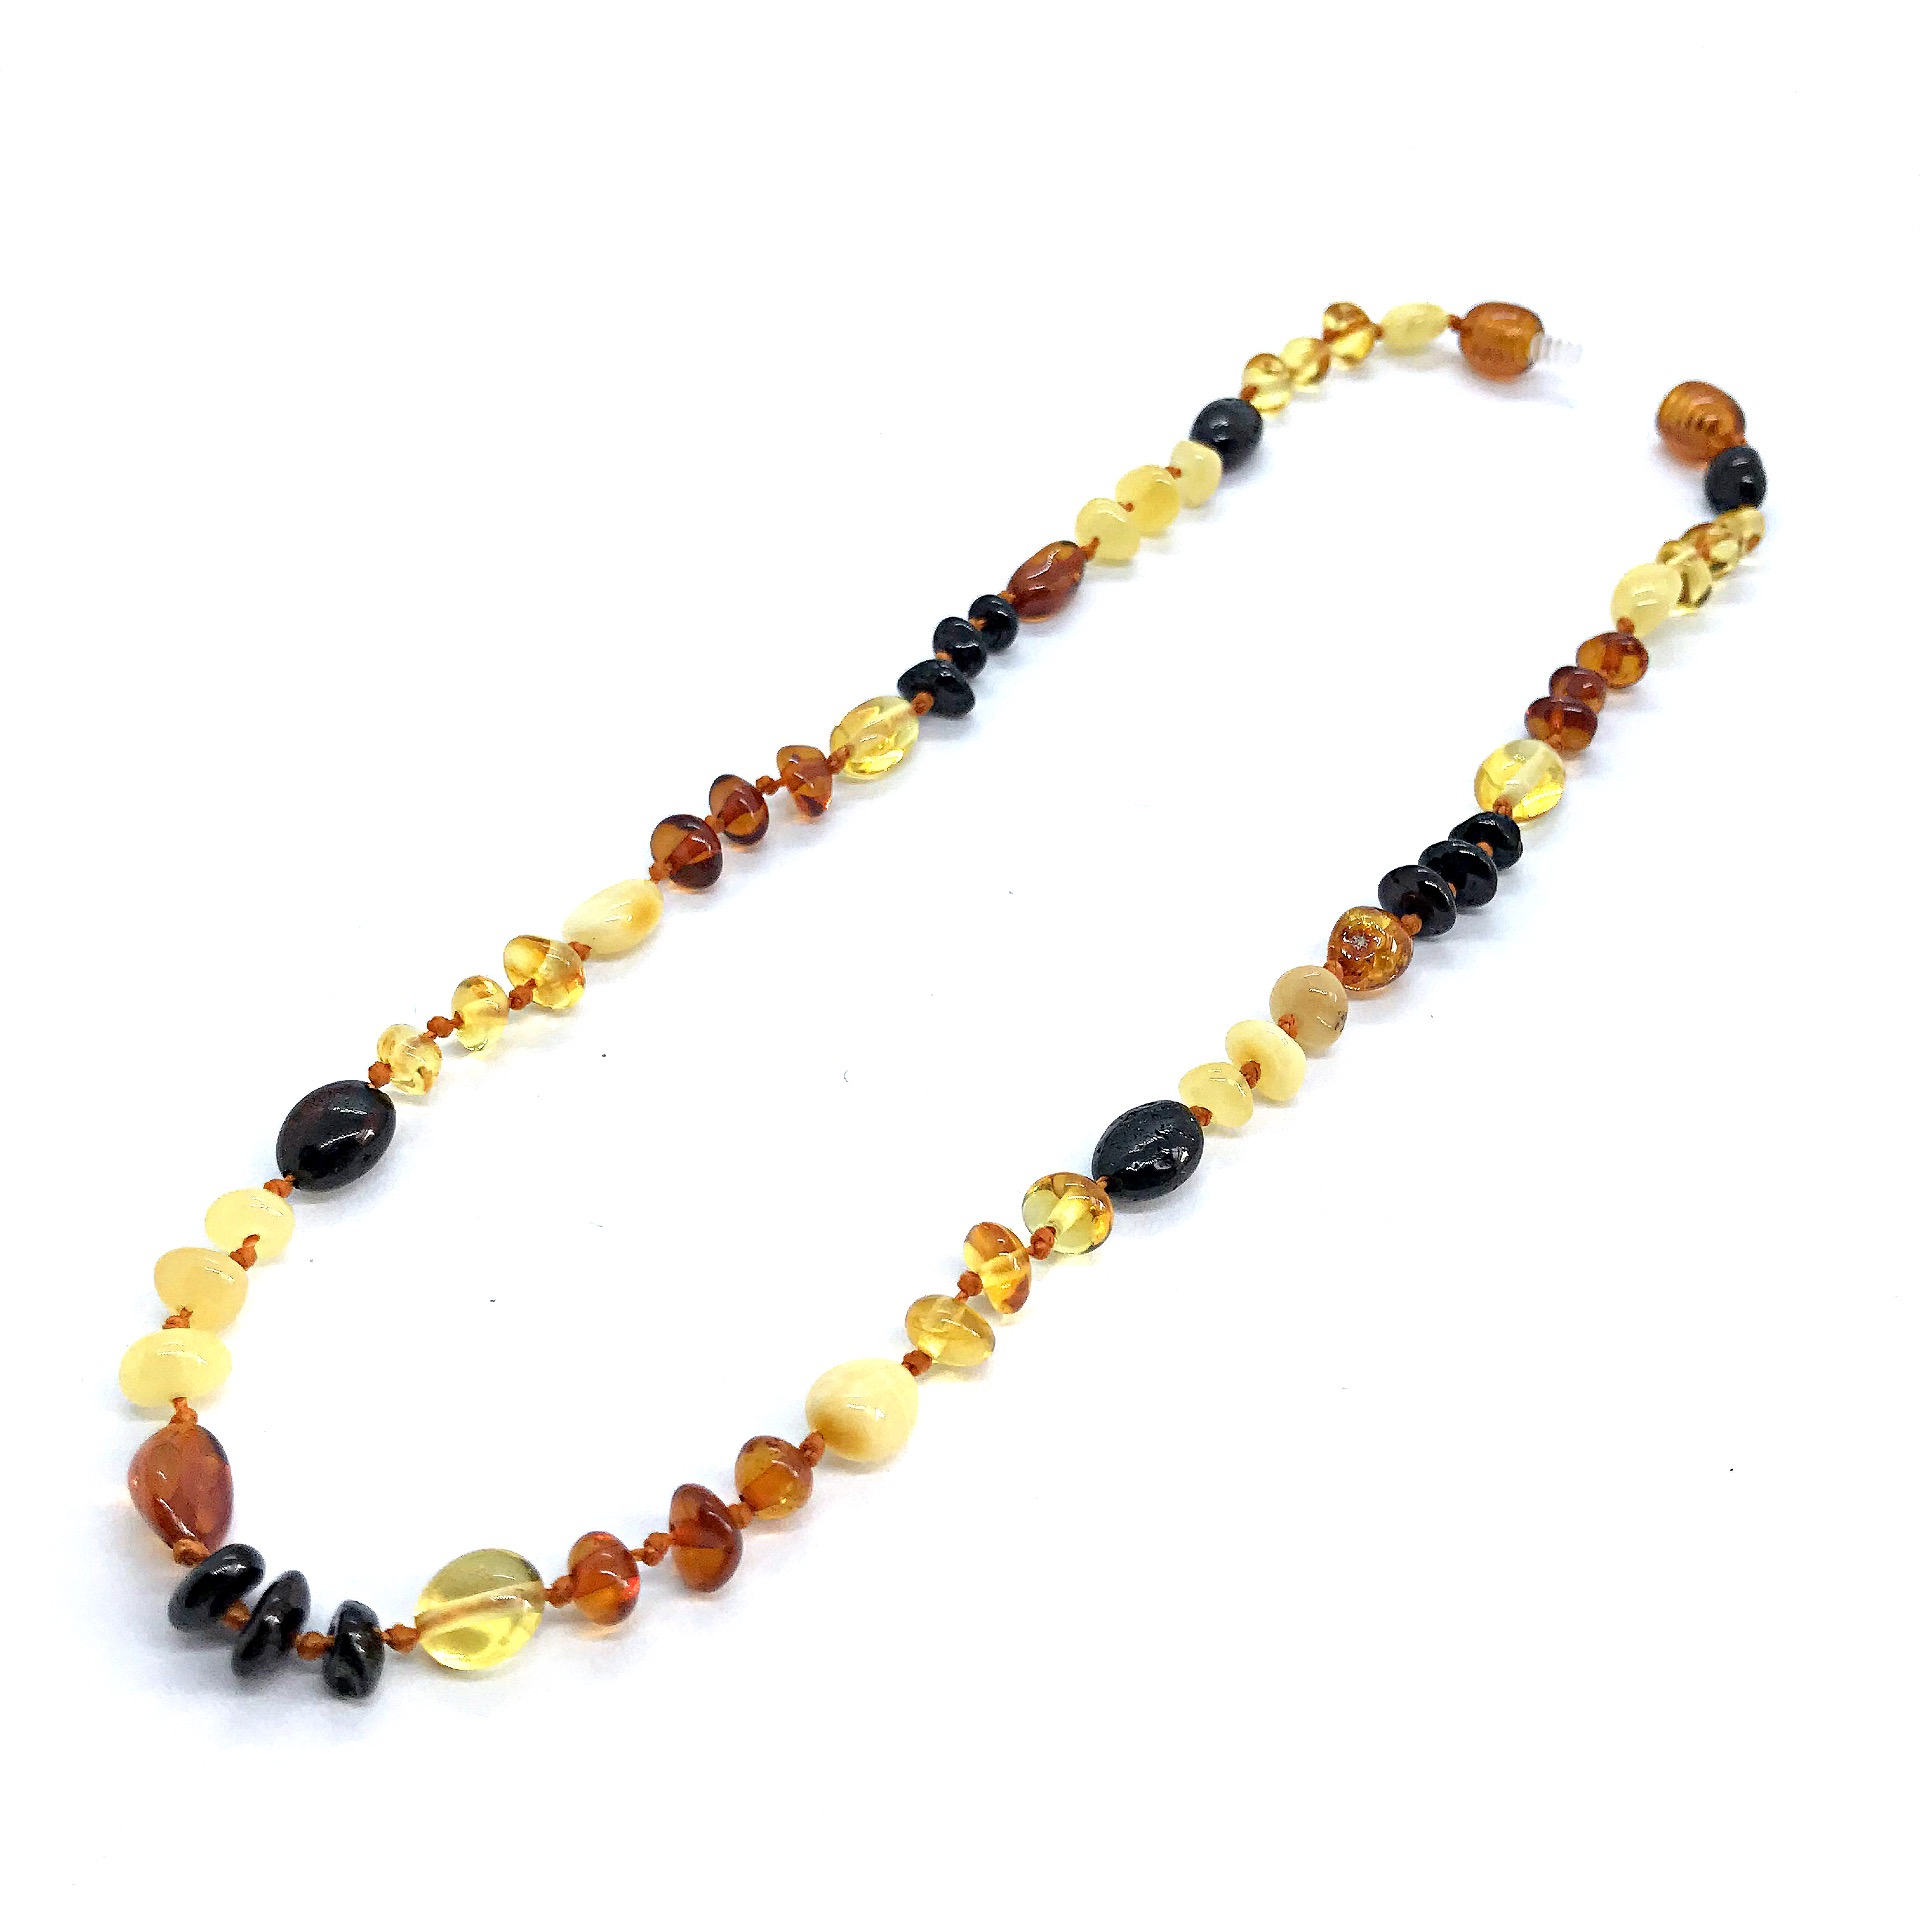 Baby/Teething Genuine Baltic Amber Necklace